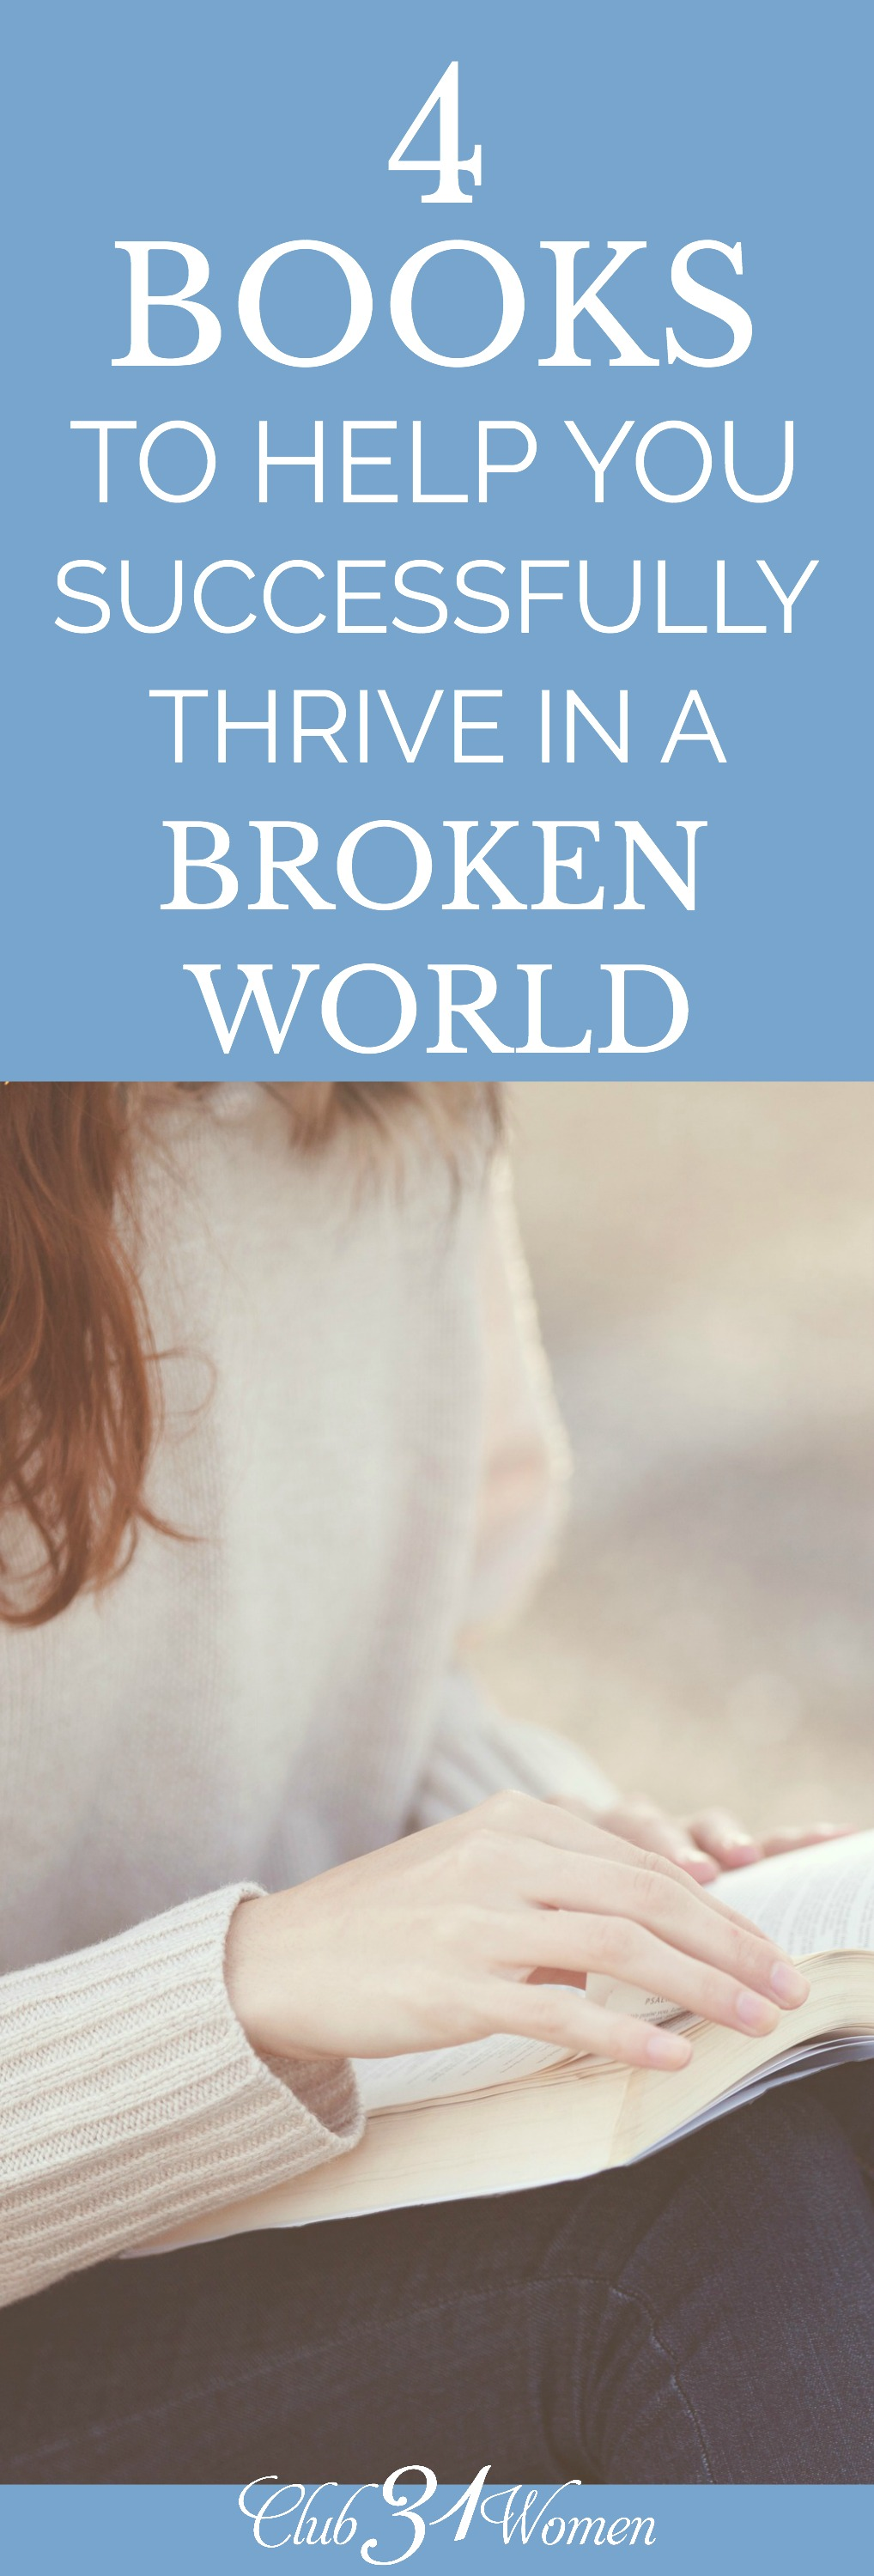 Are you looking for some reading that will positively impact your heart and mind? Here are 4 recommended titles to help you thrive in a broken world. via @Club31Women